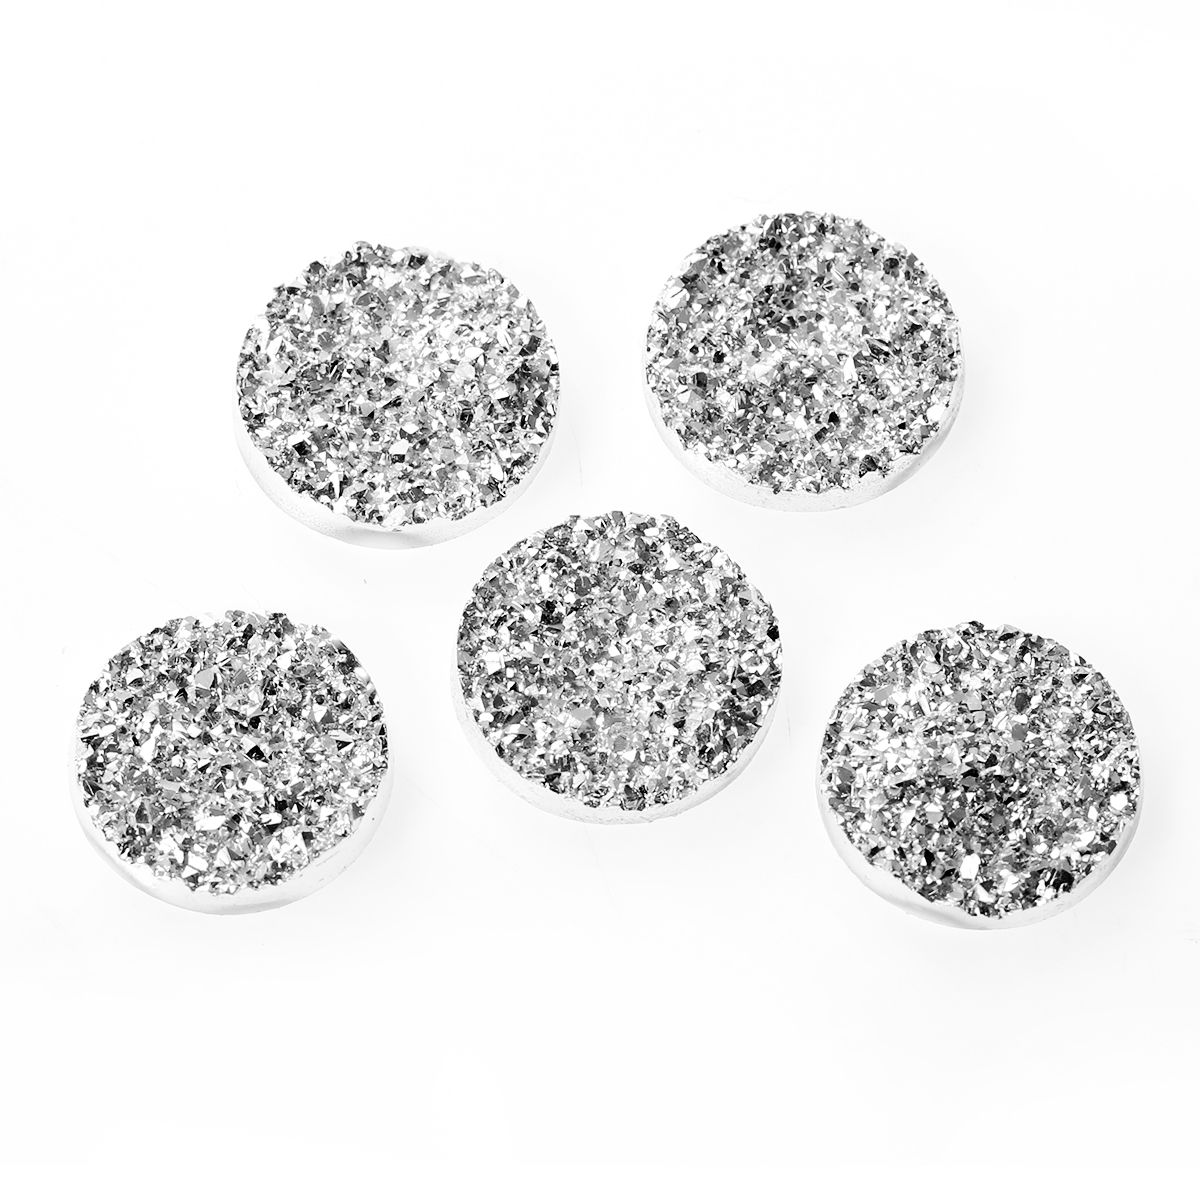 MJARTORIA 20PCs Round Twinkling Dome Resin Cabochon 18mm 12mm Charm Flatback DIY Jewelry Findings & Components Fit Cabochon Base